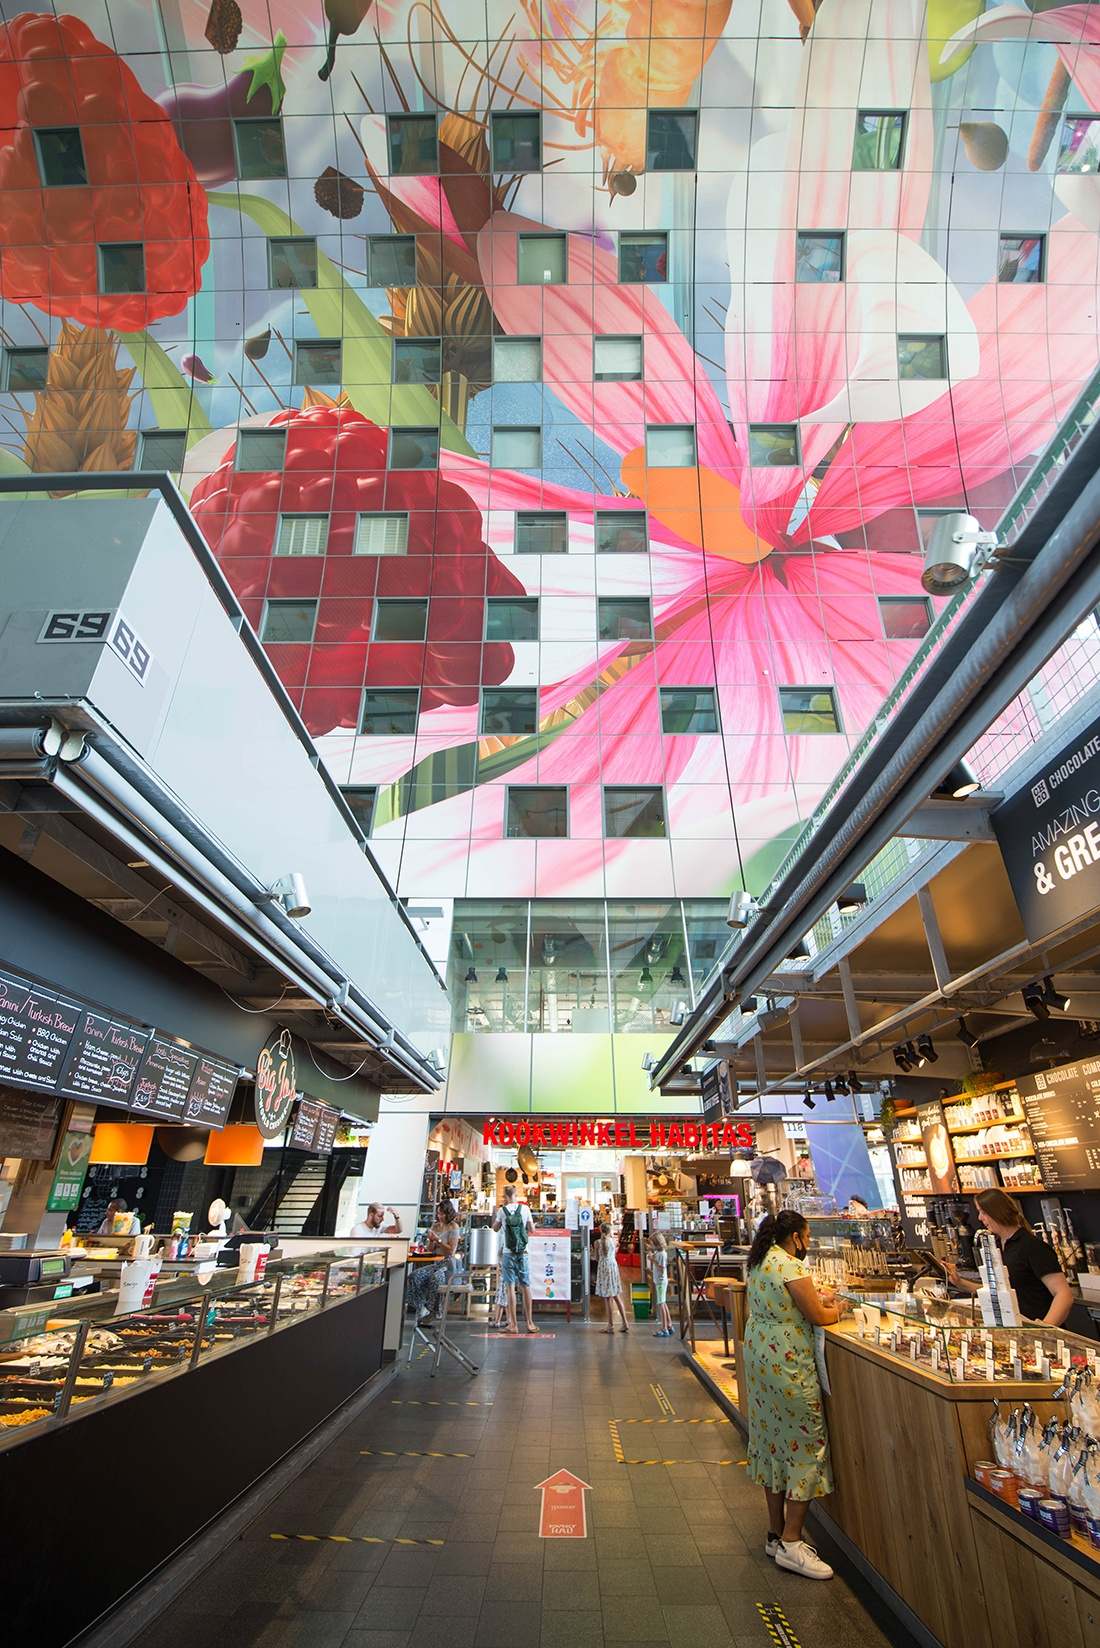 markthal, rotterdam, pays-bas